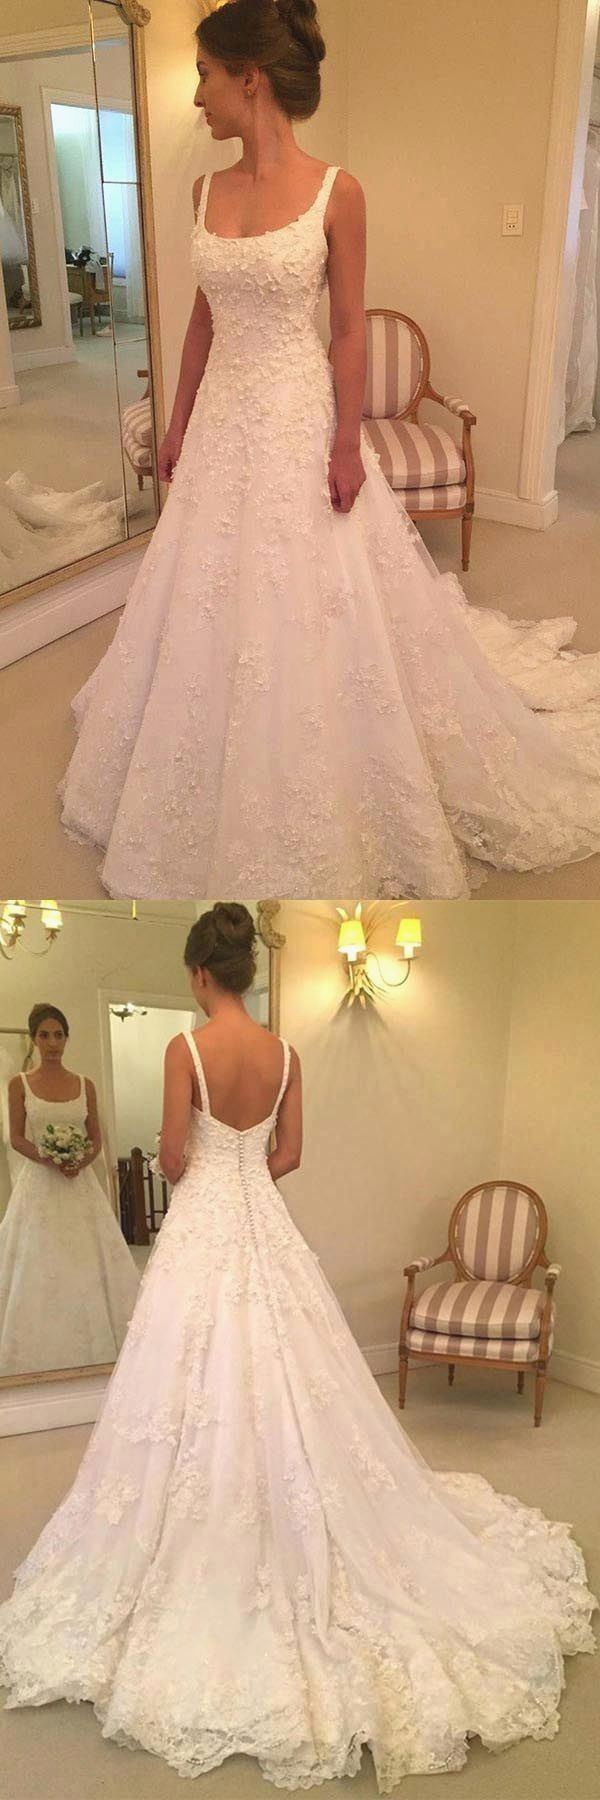 Brides dress. Brides think of having the perfect wedding ceremony, but for this they need the ideal wedding outfit, with the bridesmaid's dresses actually complimenting the brides-to-be dress. These are a number of ideas on wedding dresses.